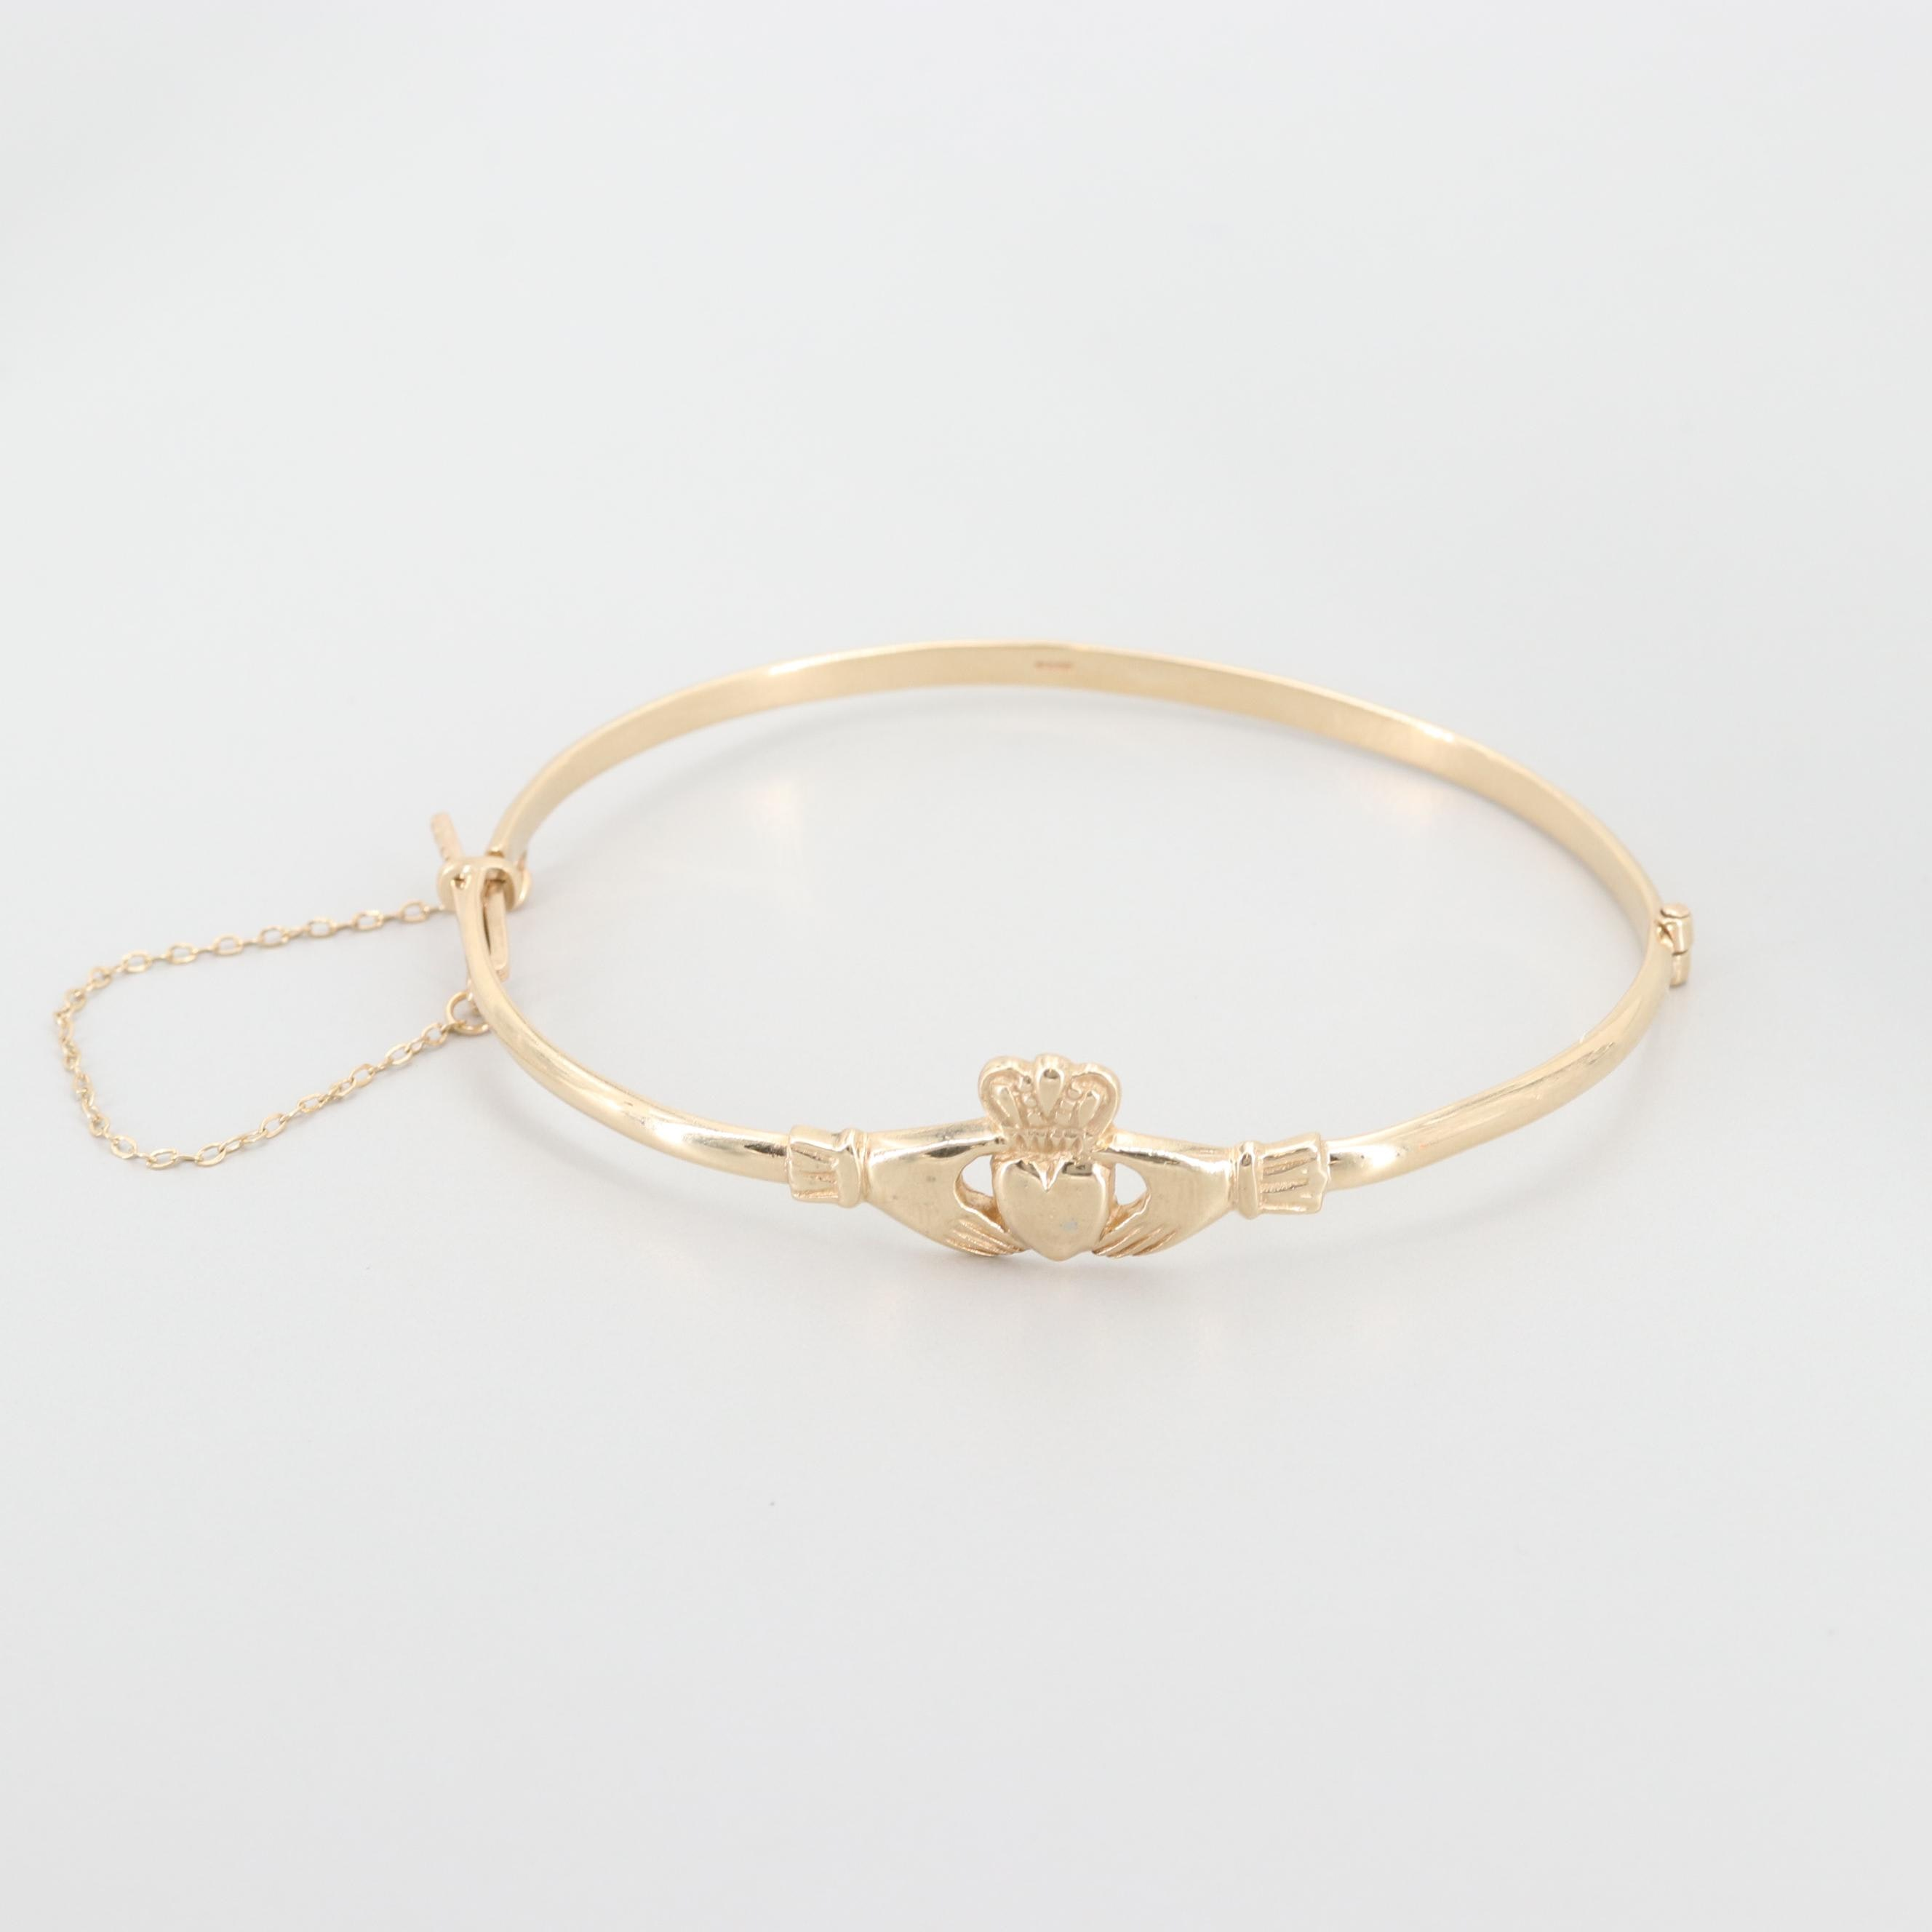 9K Yellow Gold Claddagh Bangle Bracelet